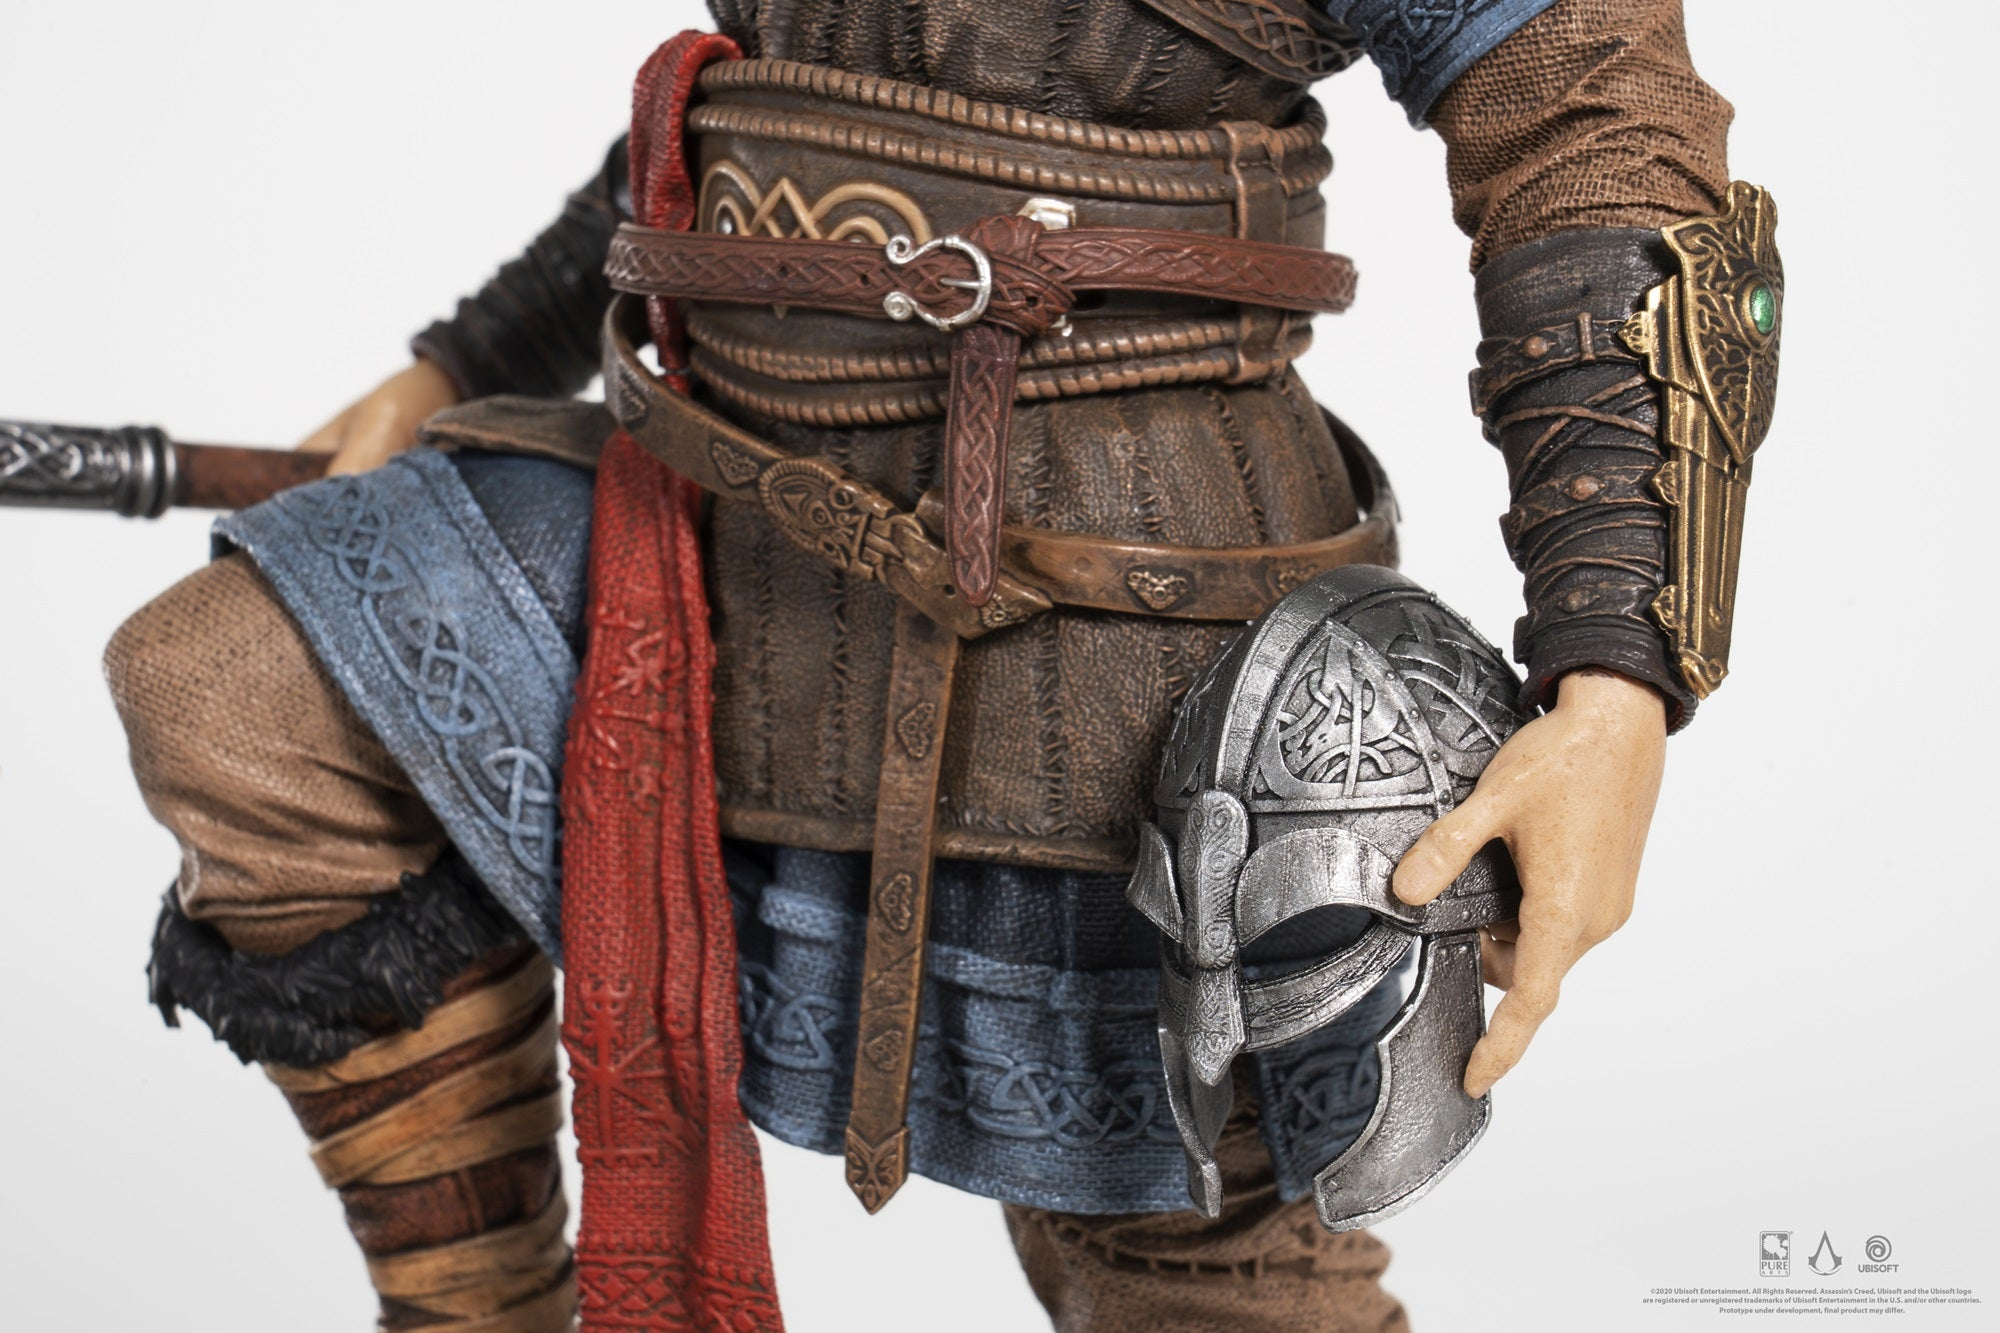 Assassin S Creed Valhalla Bundle With Eivor Statue Life Size Hidden Blade Prop Dice Game Purearts